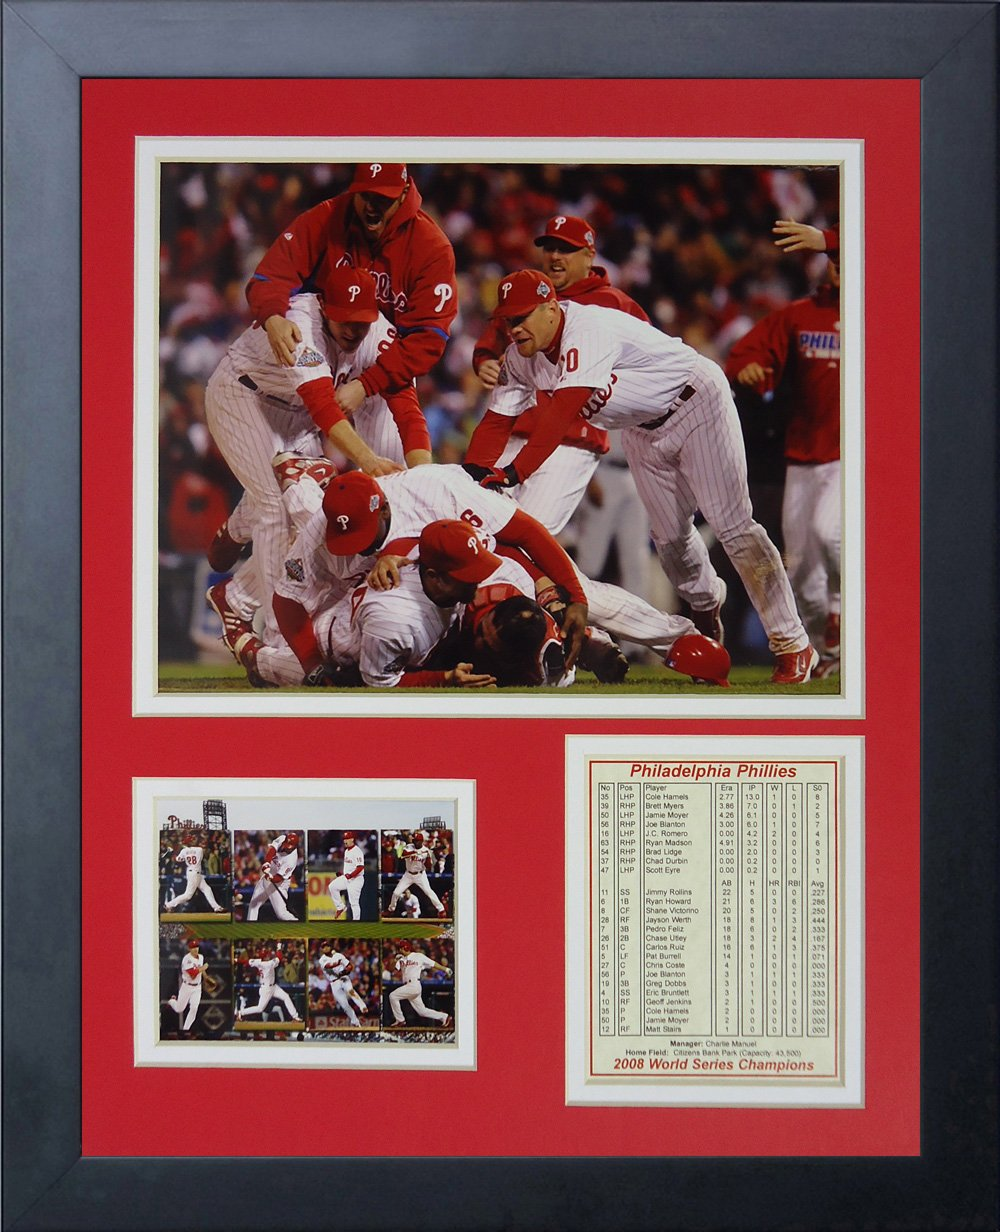 Legends Never Die ''2008 Philadelphia Phillies World Series Champions Framed Photo Collage, 11 x 14-Inch by Legends Never Die